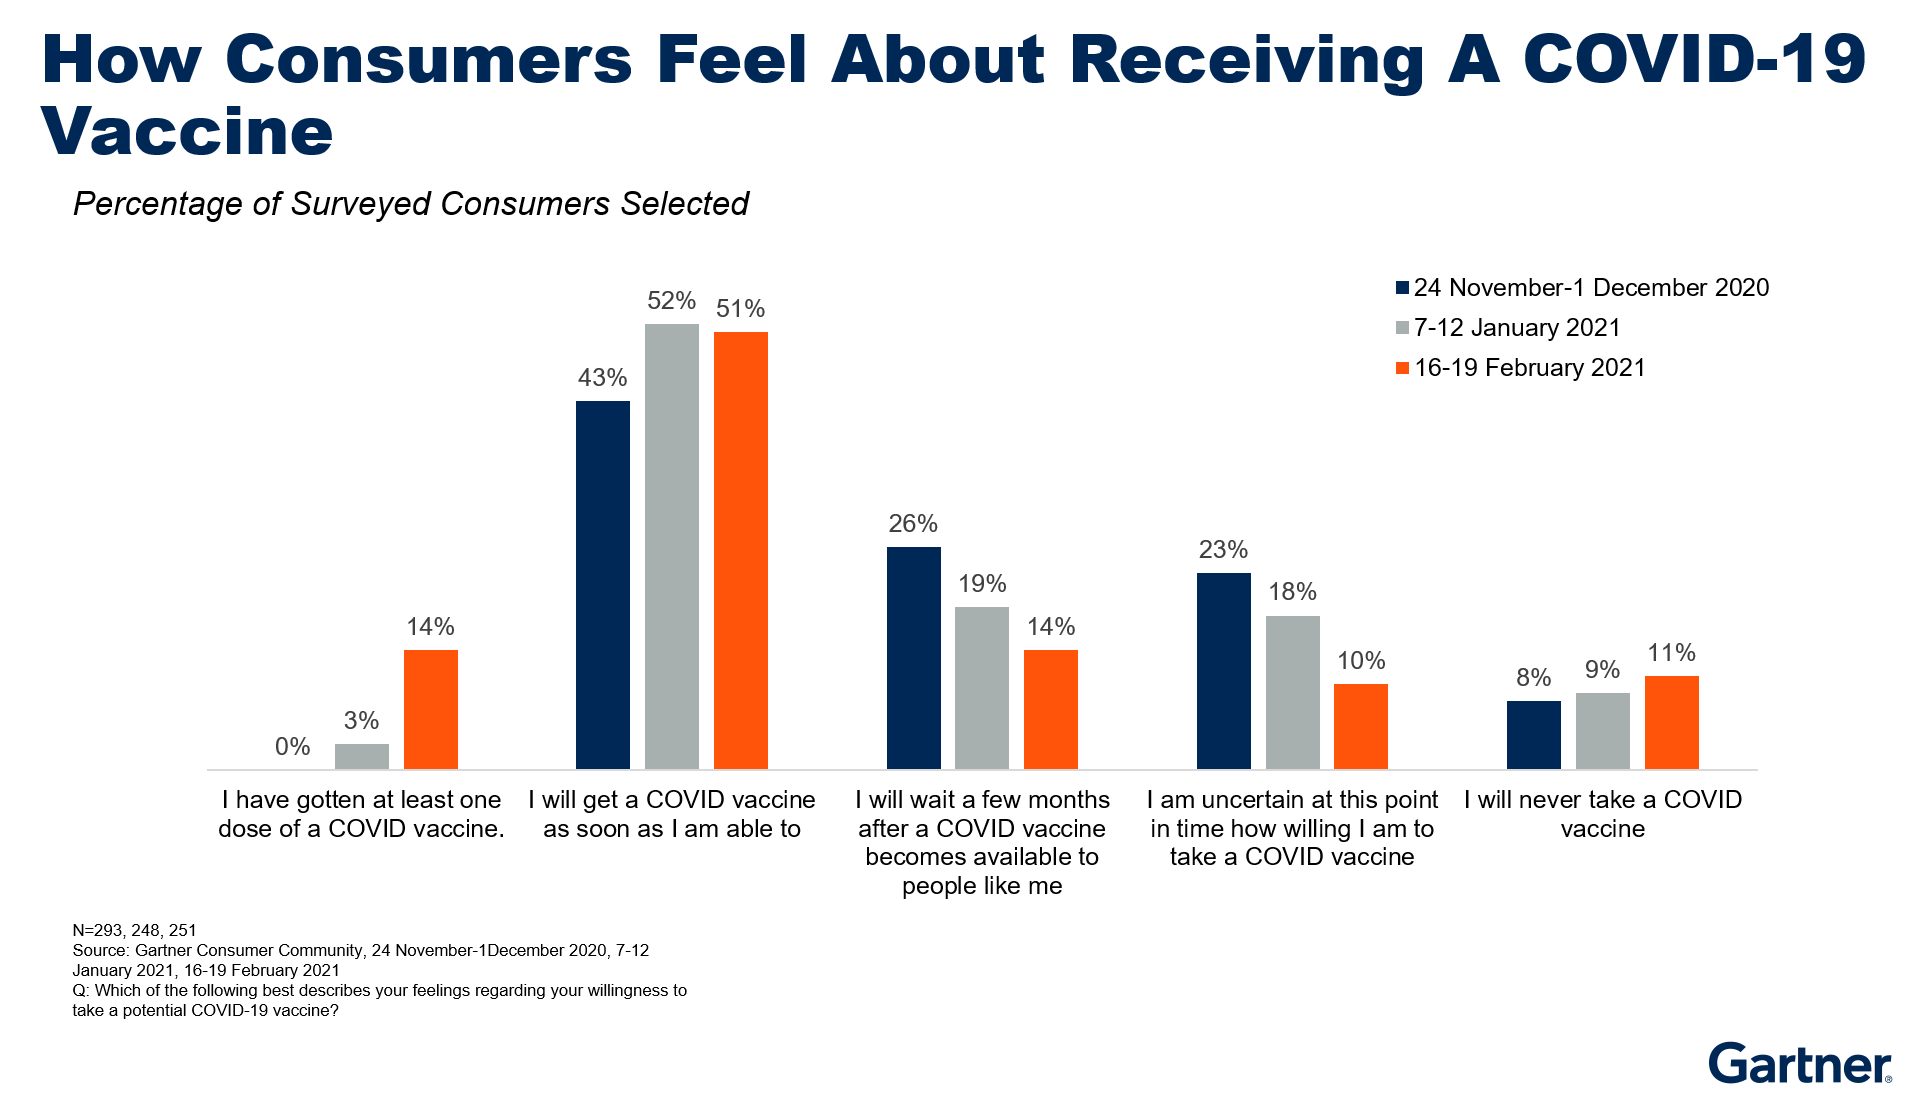 Figure 1. How Consumers Feel About Receiving A COVID-19 Vaccine